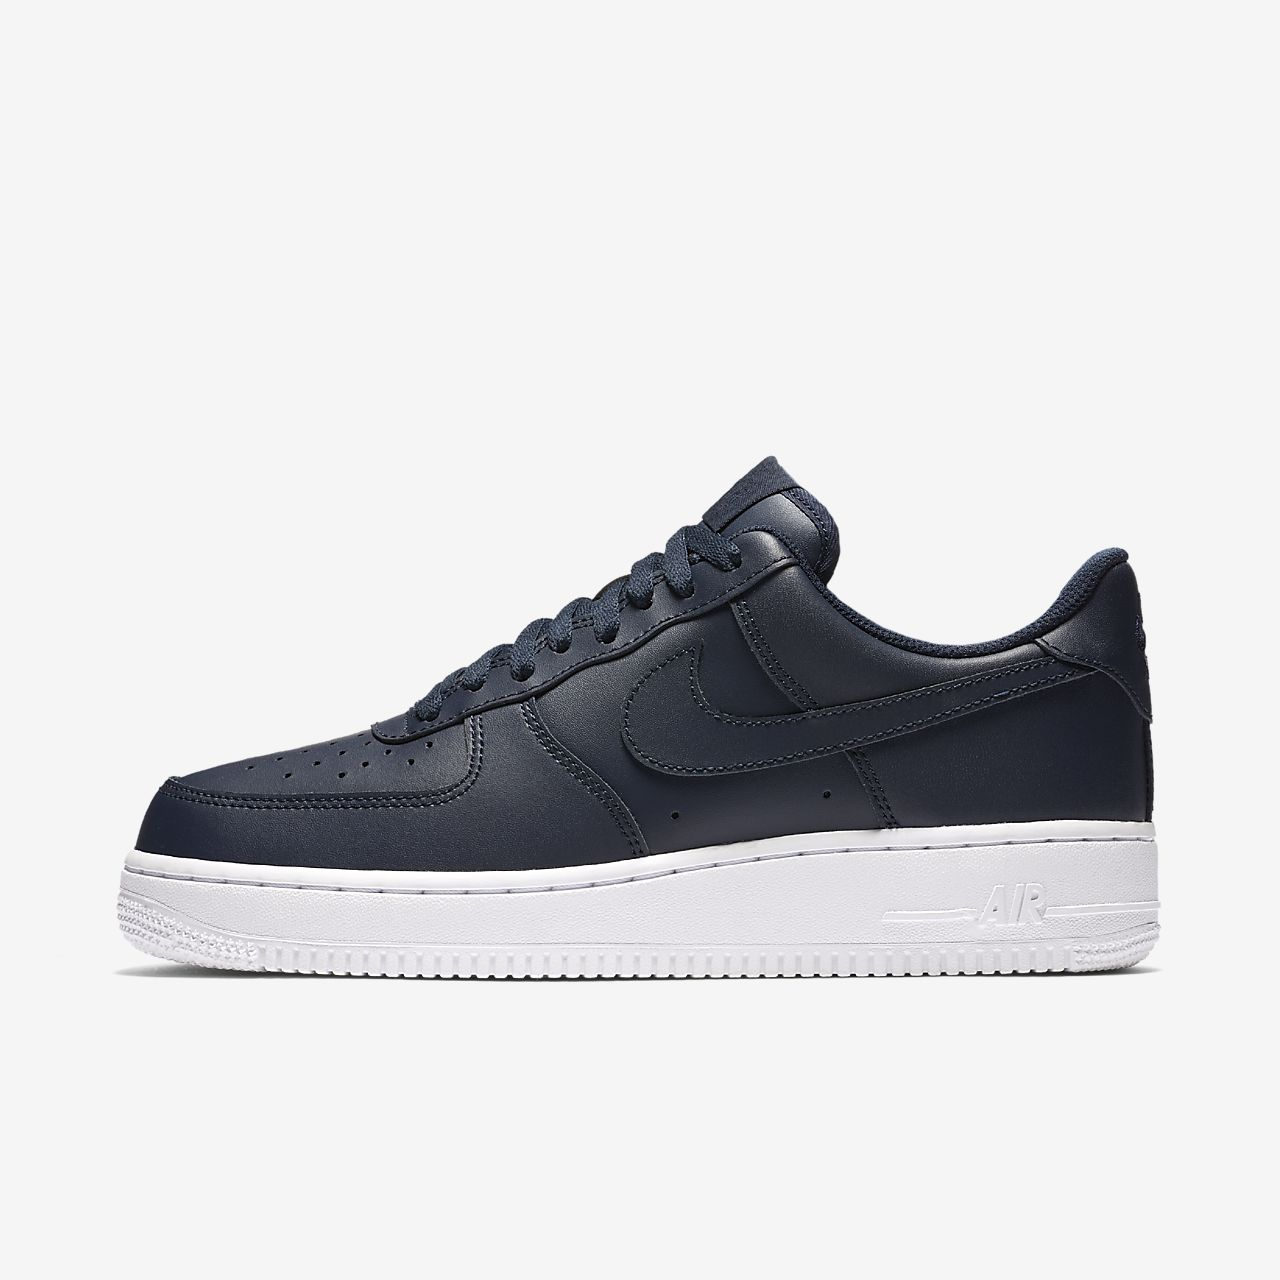 new arrival c7bd5 48e42 ... Chaussure Nike Air Force 1 07 pour Homme